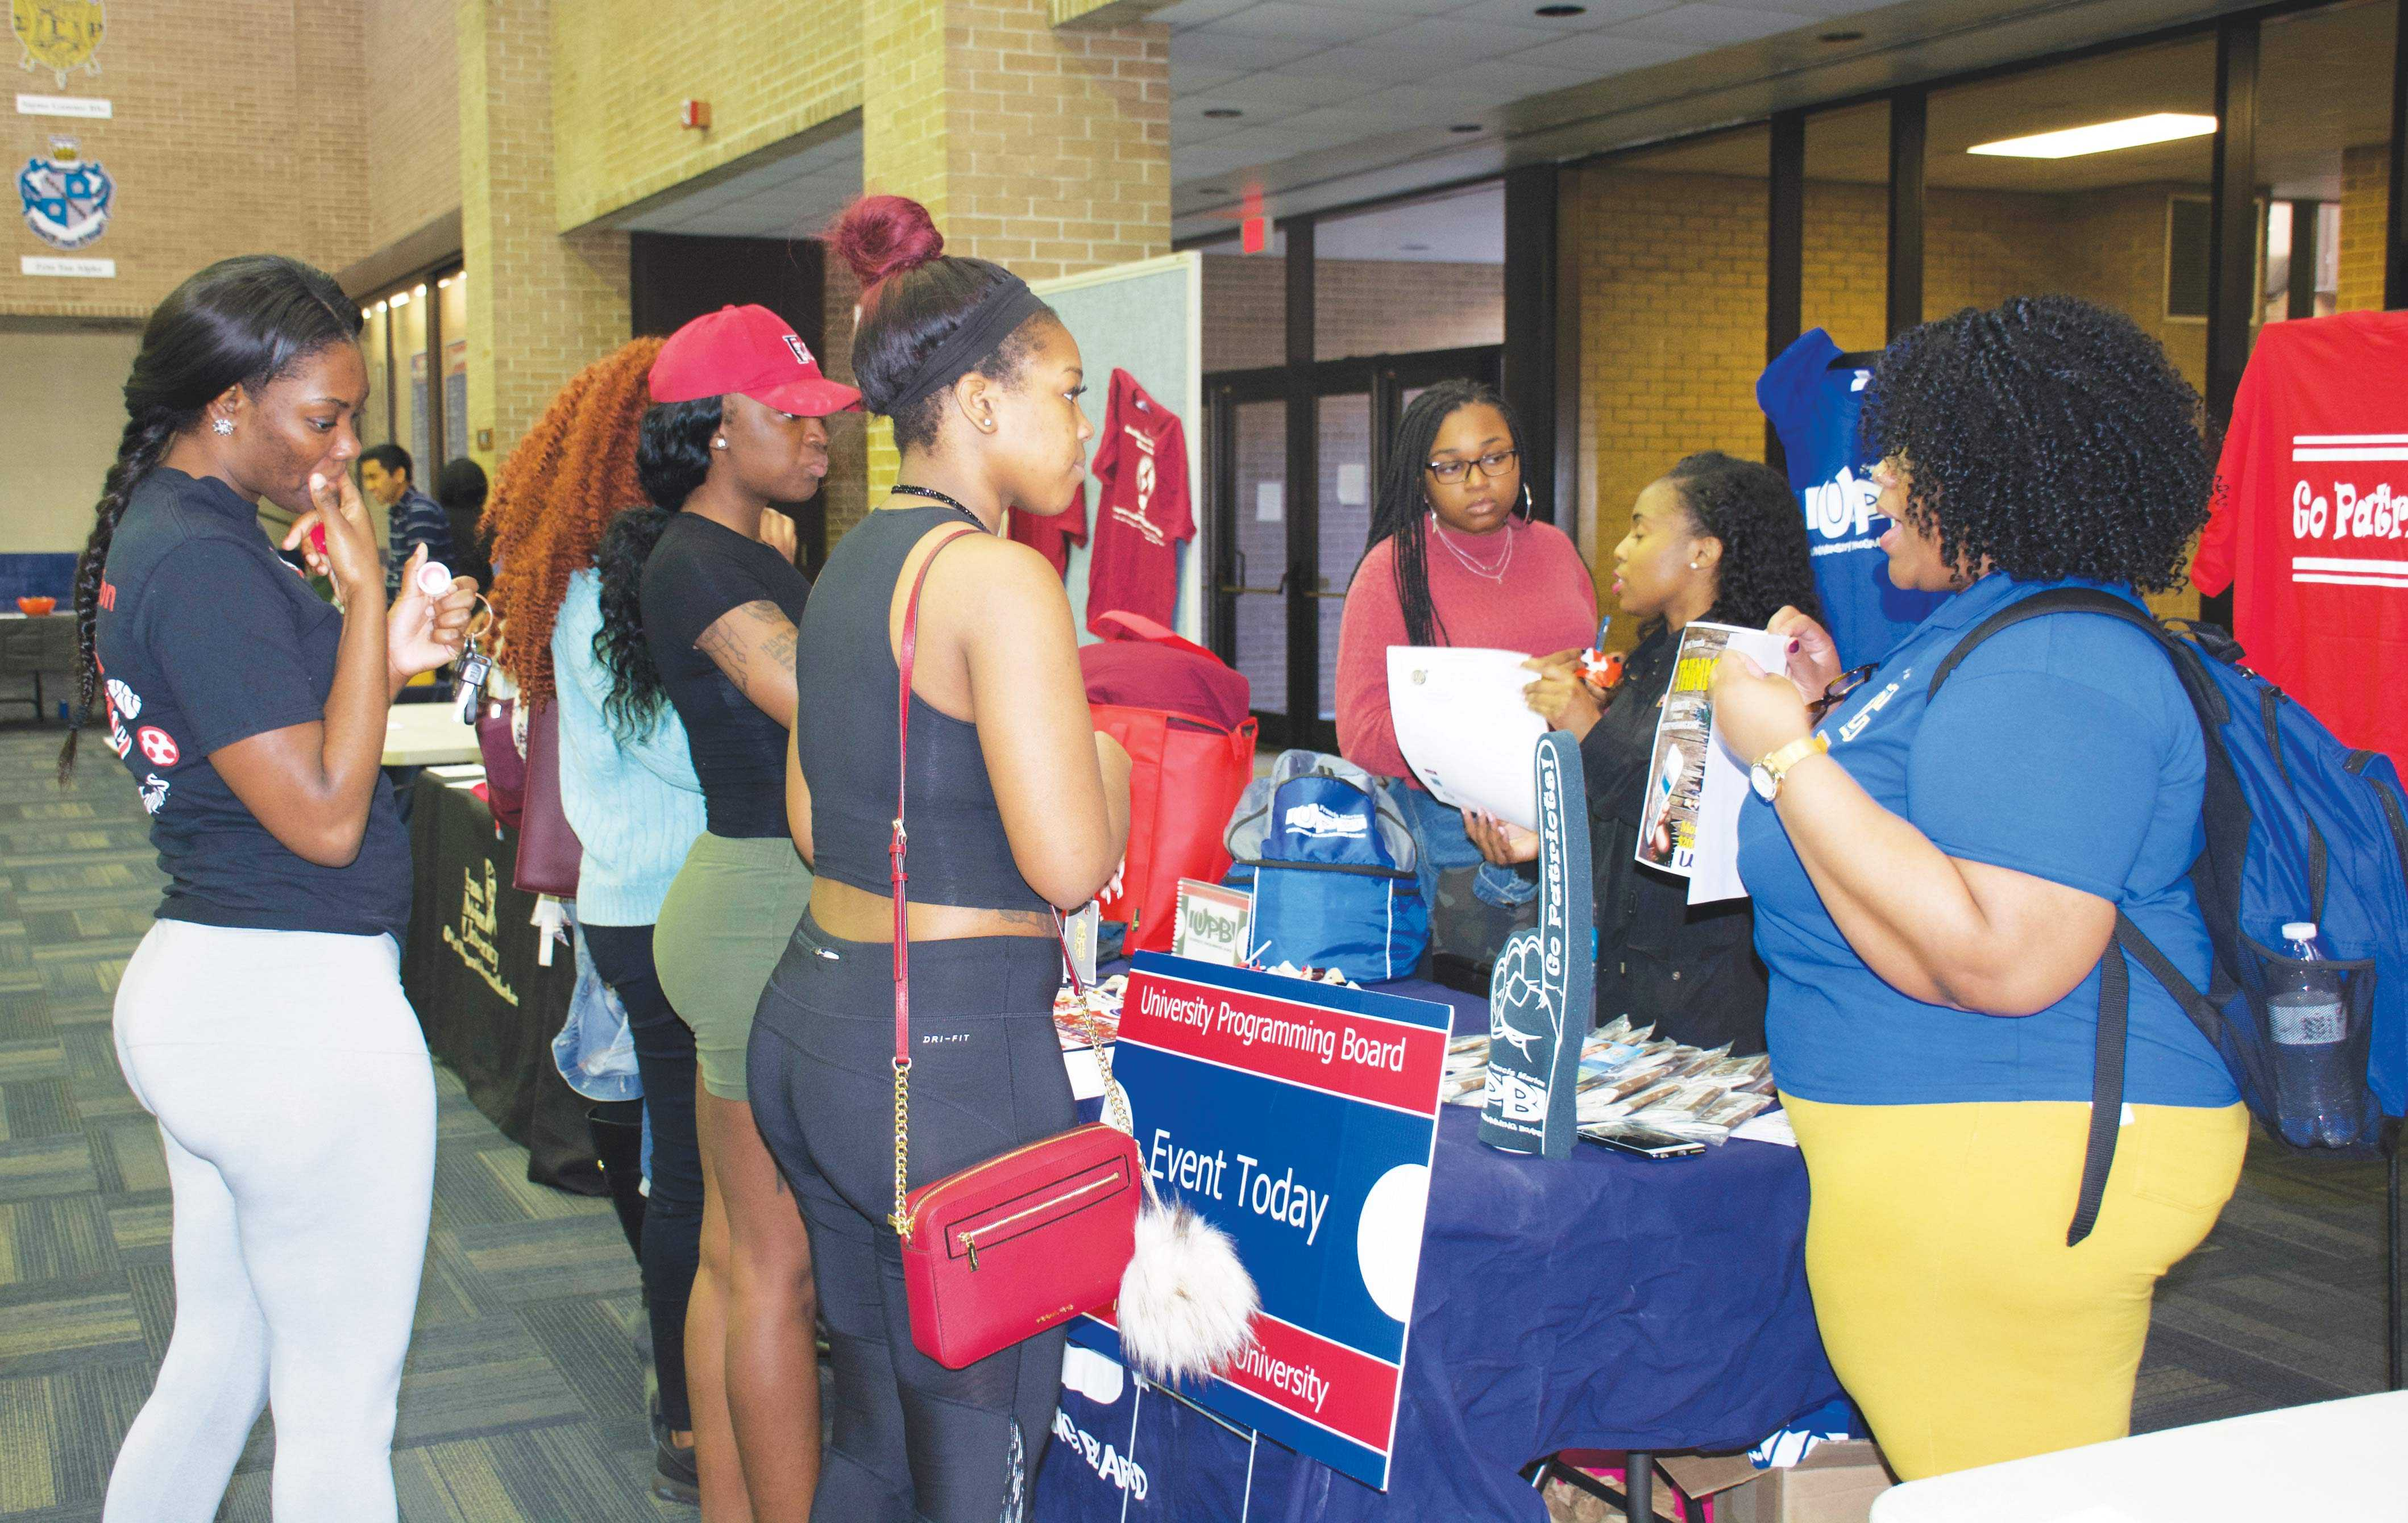 Students talk to members of an organization at the spring involvement fair to learn about groups they are interested in joining.